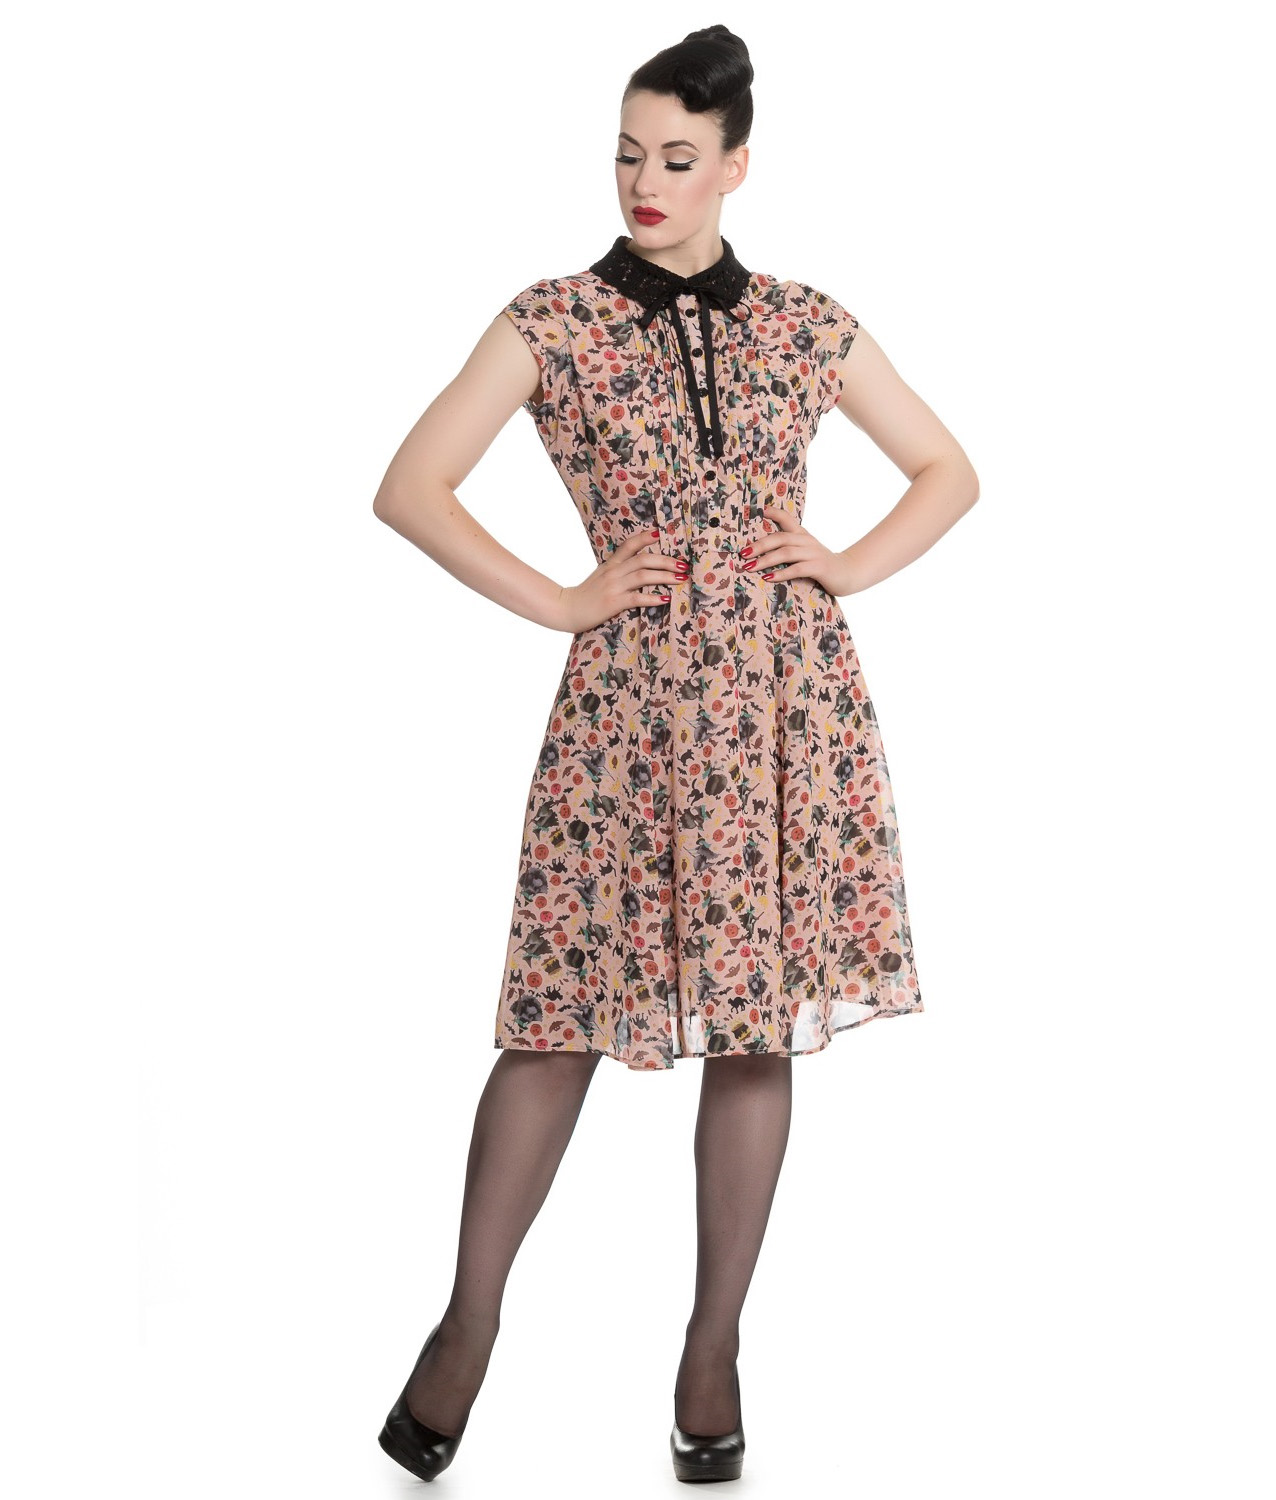 Hell-Bunny-Gothic-40s-50s-Beige-Dress-ZELDA-Witchy-Halloween-All-Sizes thumbnail 27